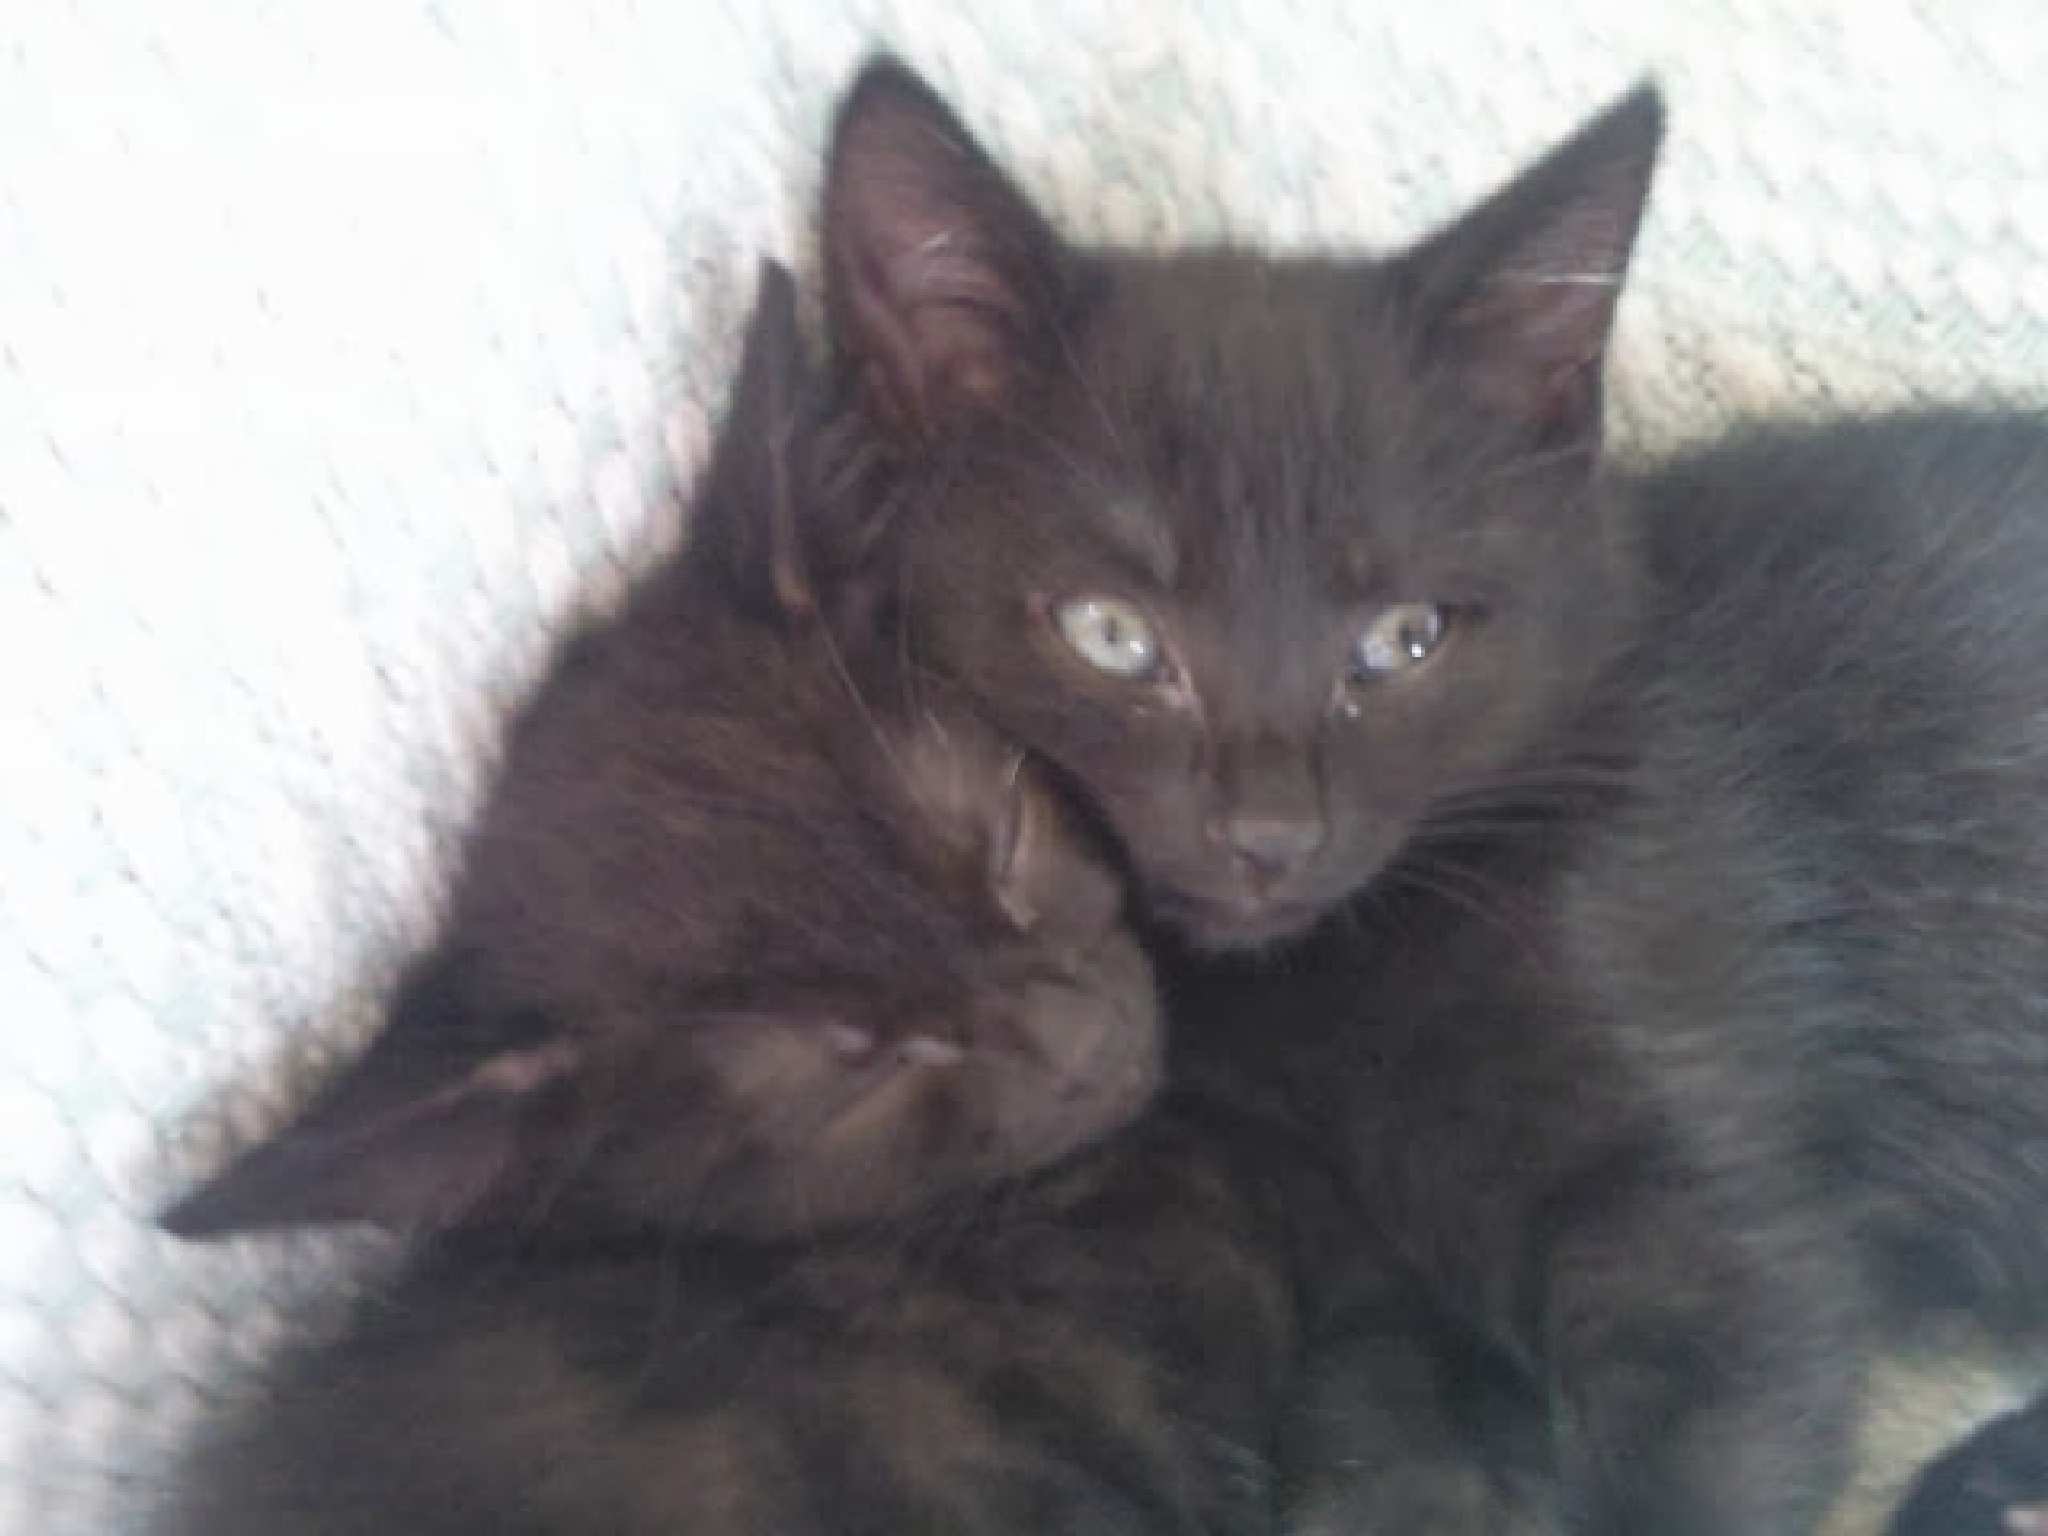 Twins are cute 2. by bestwick.annette